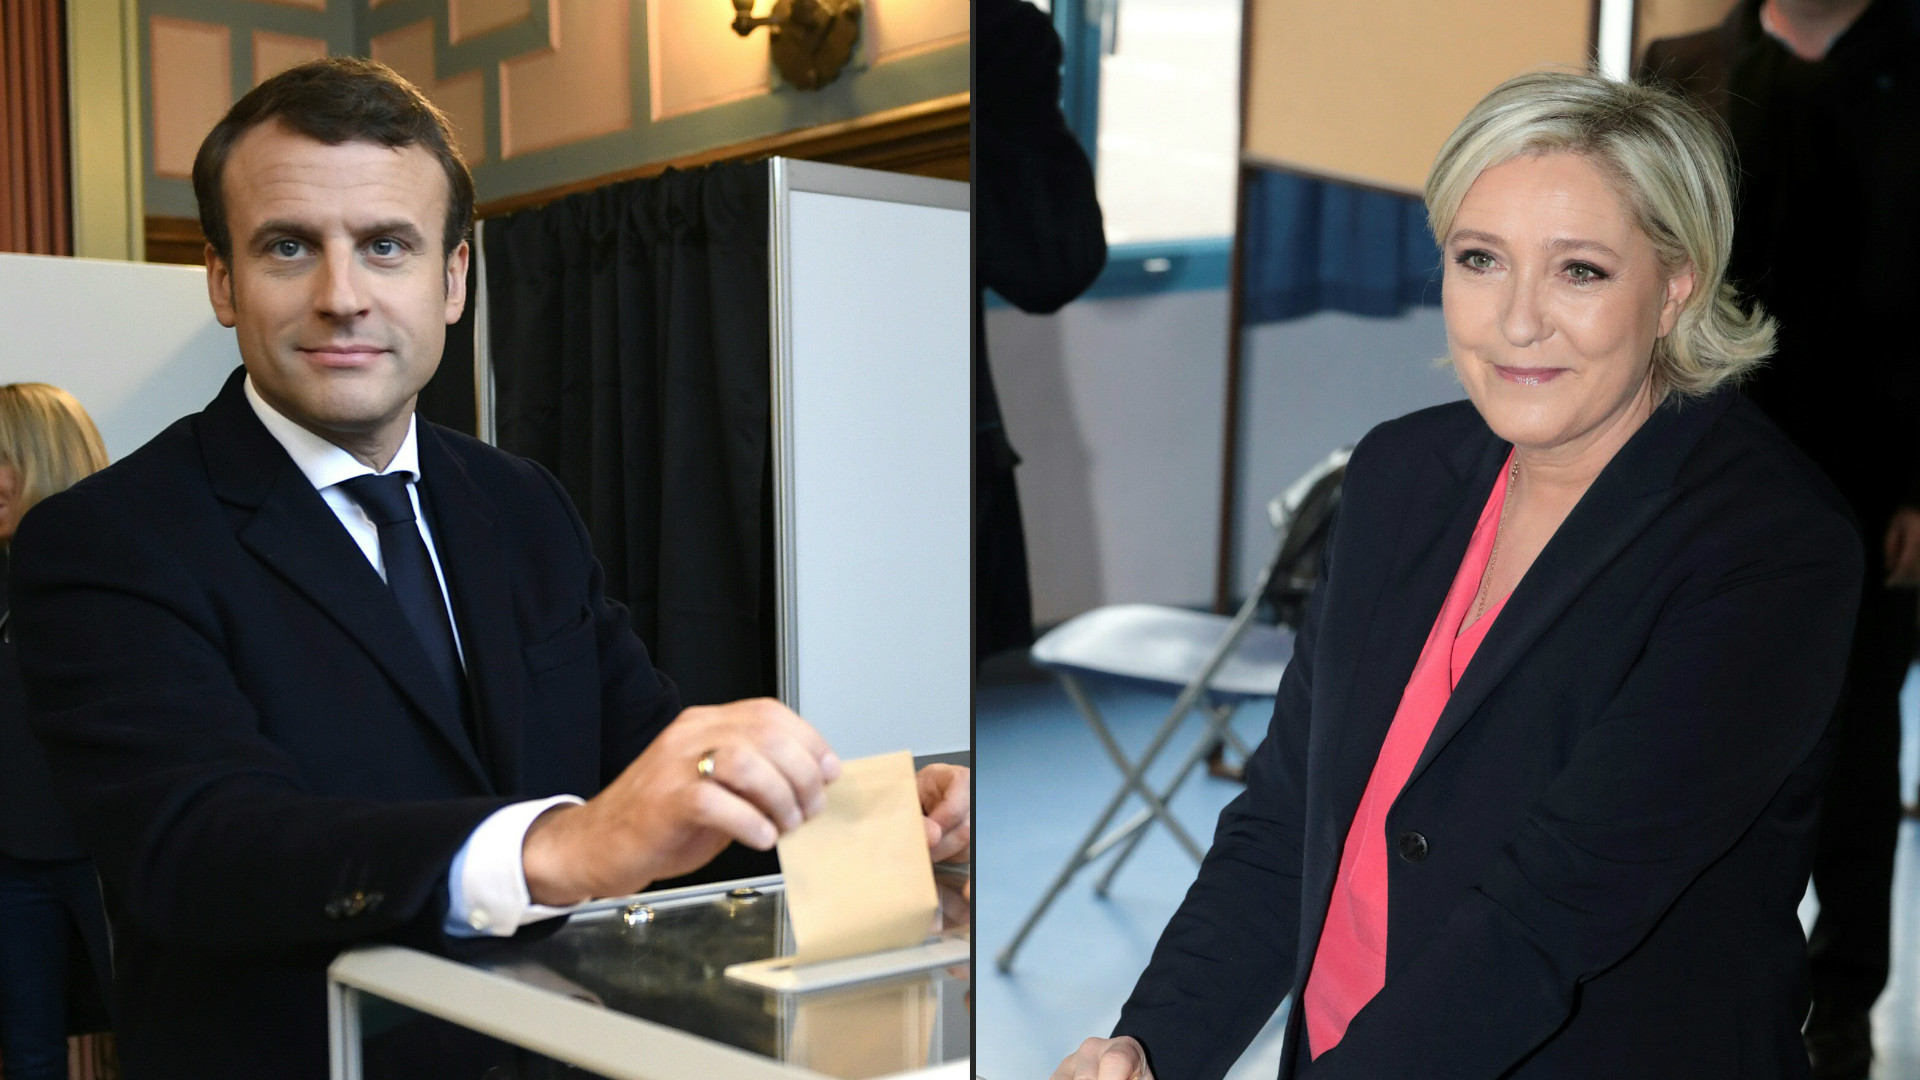 Marine Le Pen and Emmanuel Macron.